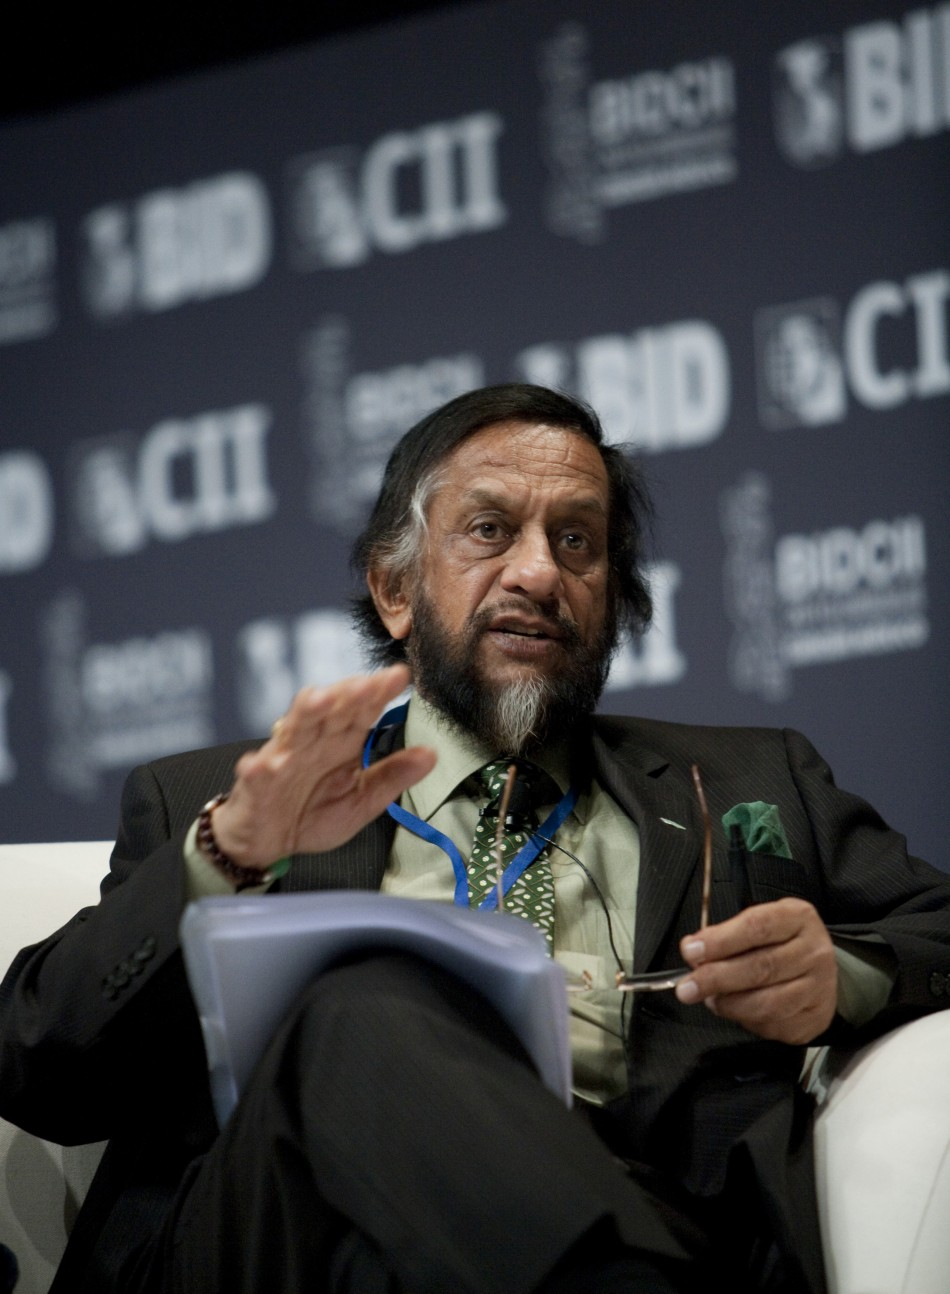 IPCC head Rajendra Pachauri faces sexual harassment charges filed by colleague